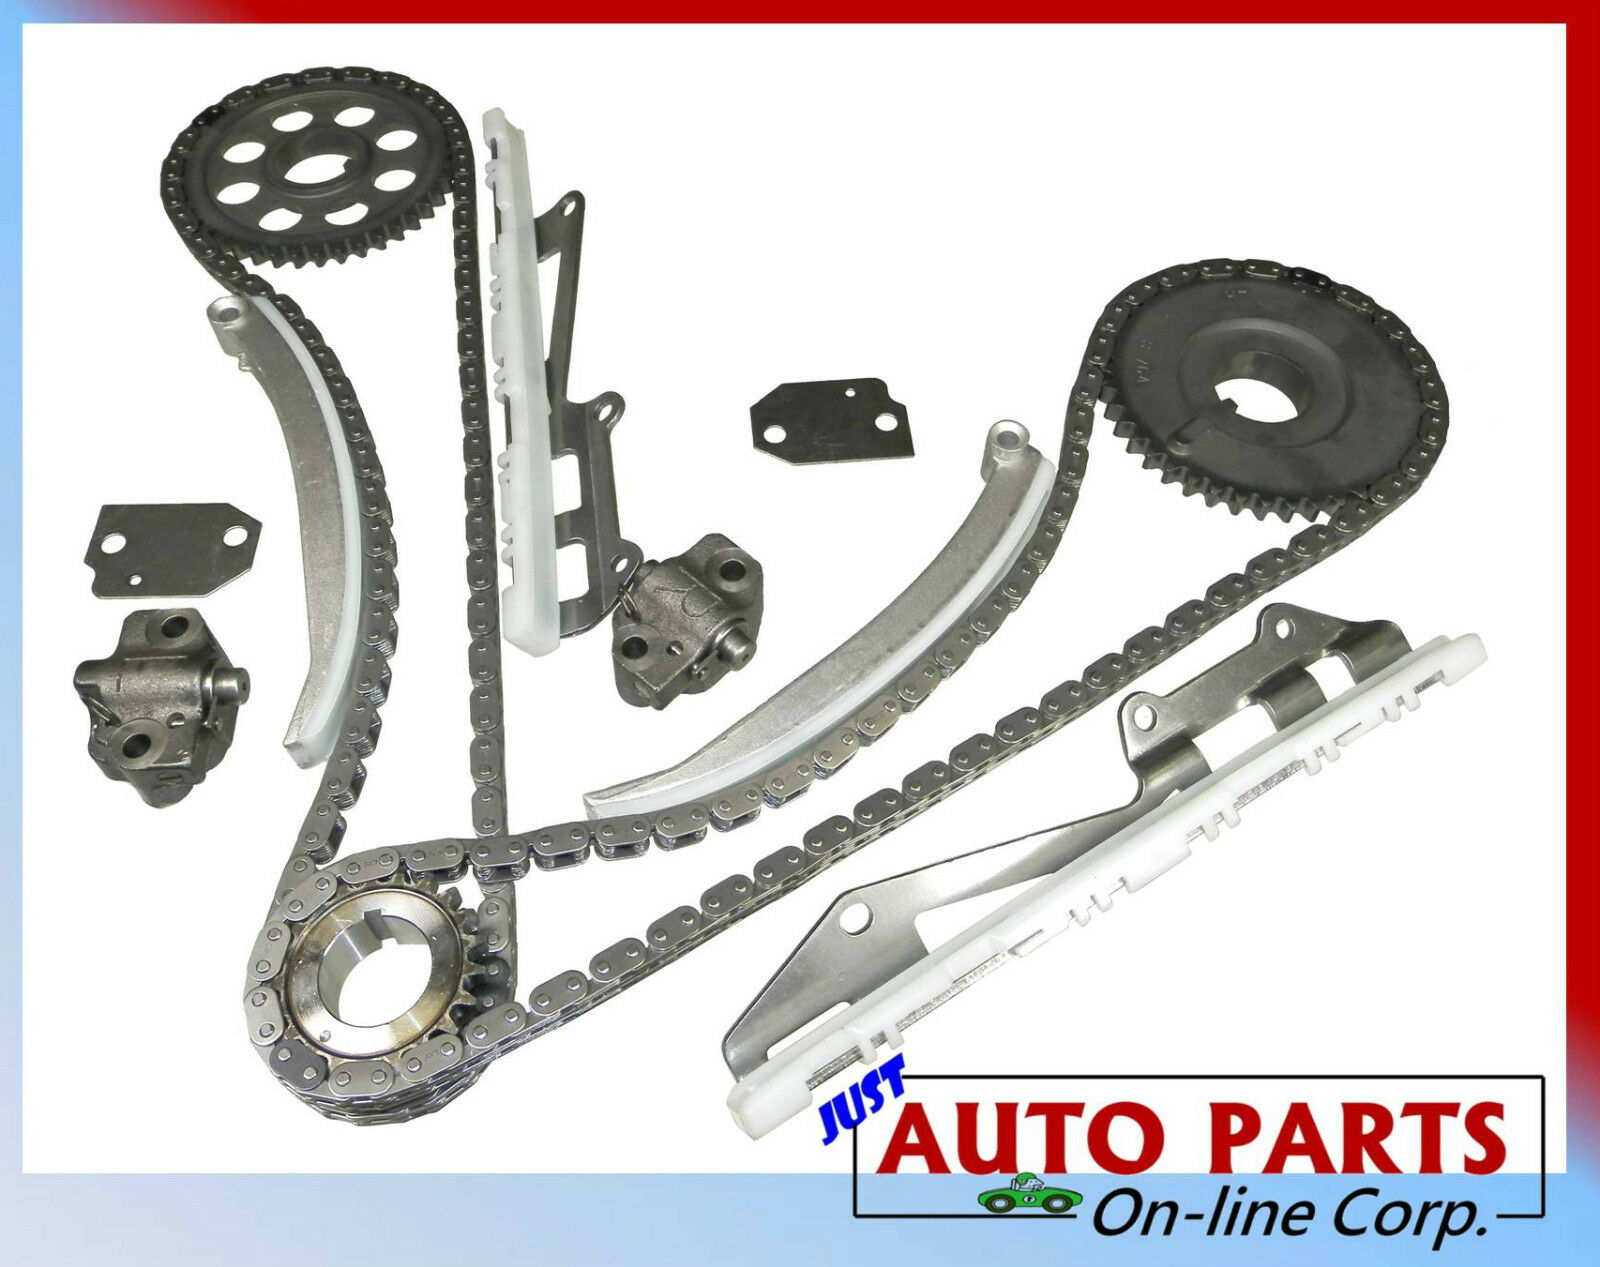 Timing Chain Kit Mustang Crown Victoria F150/250 Expedition V8 4.6l- Vin W 9 X